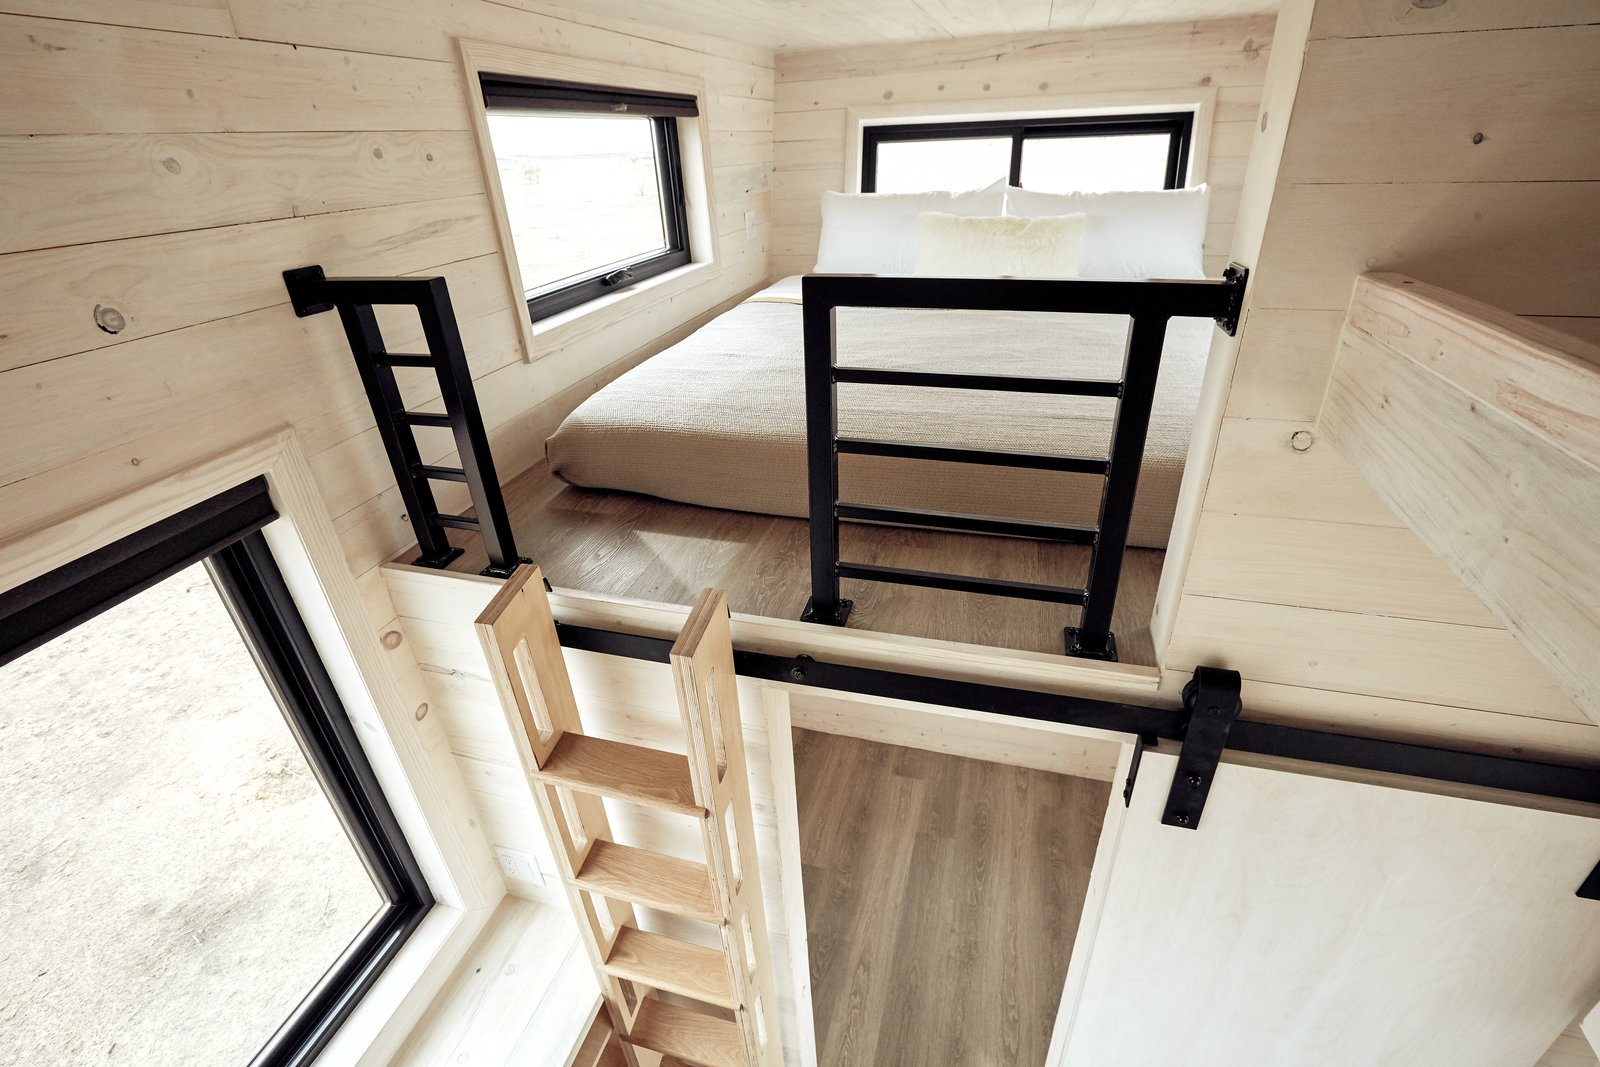 The loft ladder can be hung against the wall as shown or secured at an angle for ergonomic climbing. The master loft easily fits a king size bed. Ladder and built-ins designed by Land Ark, cut and assembled by Twig Custom Builders.  Land Ark RV - Drake by Brian Buzarde